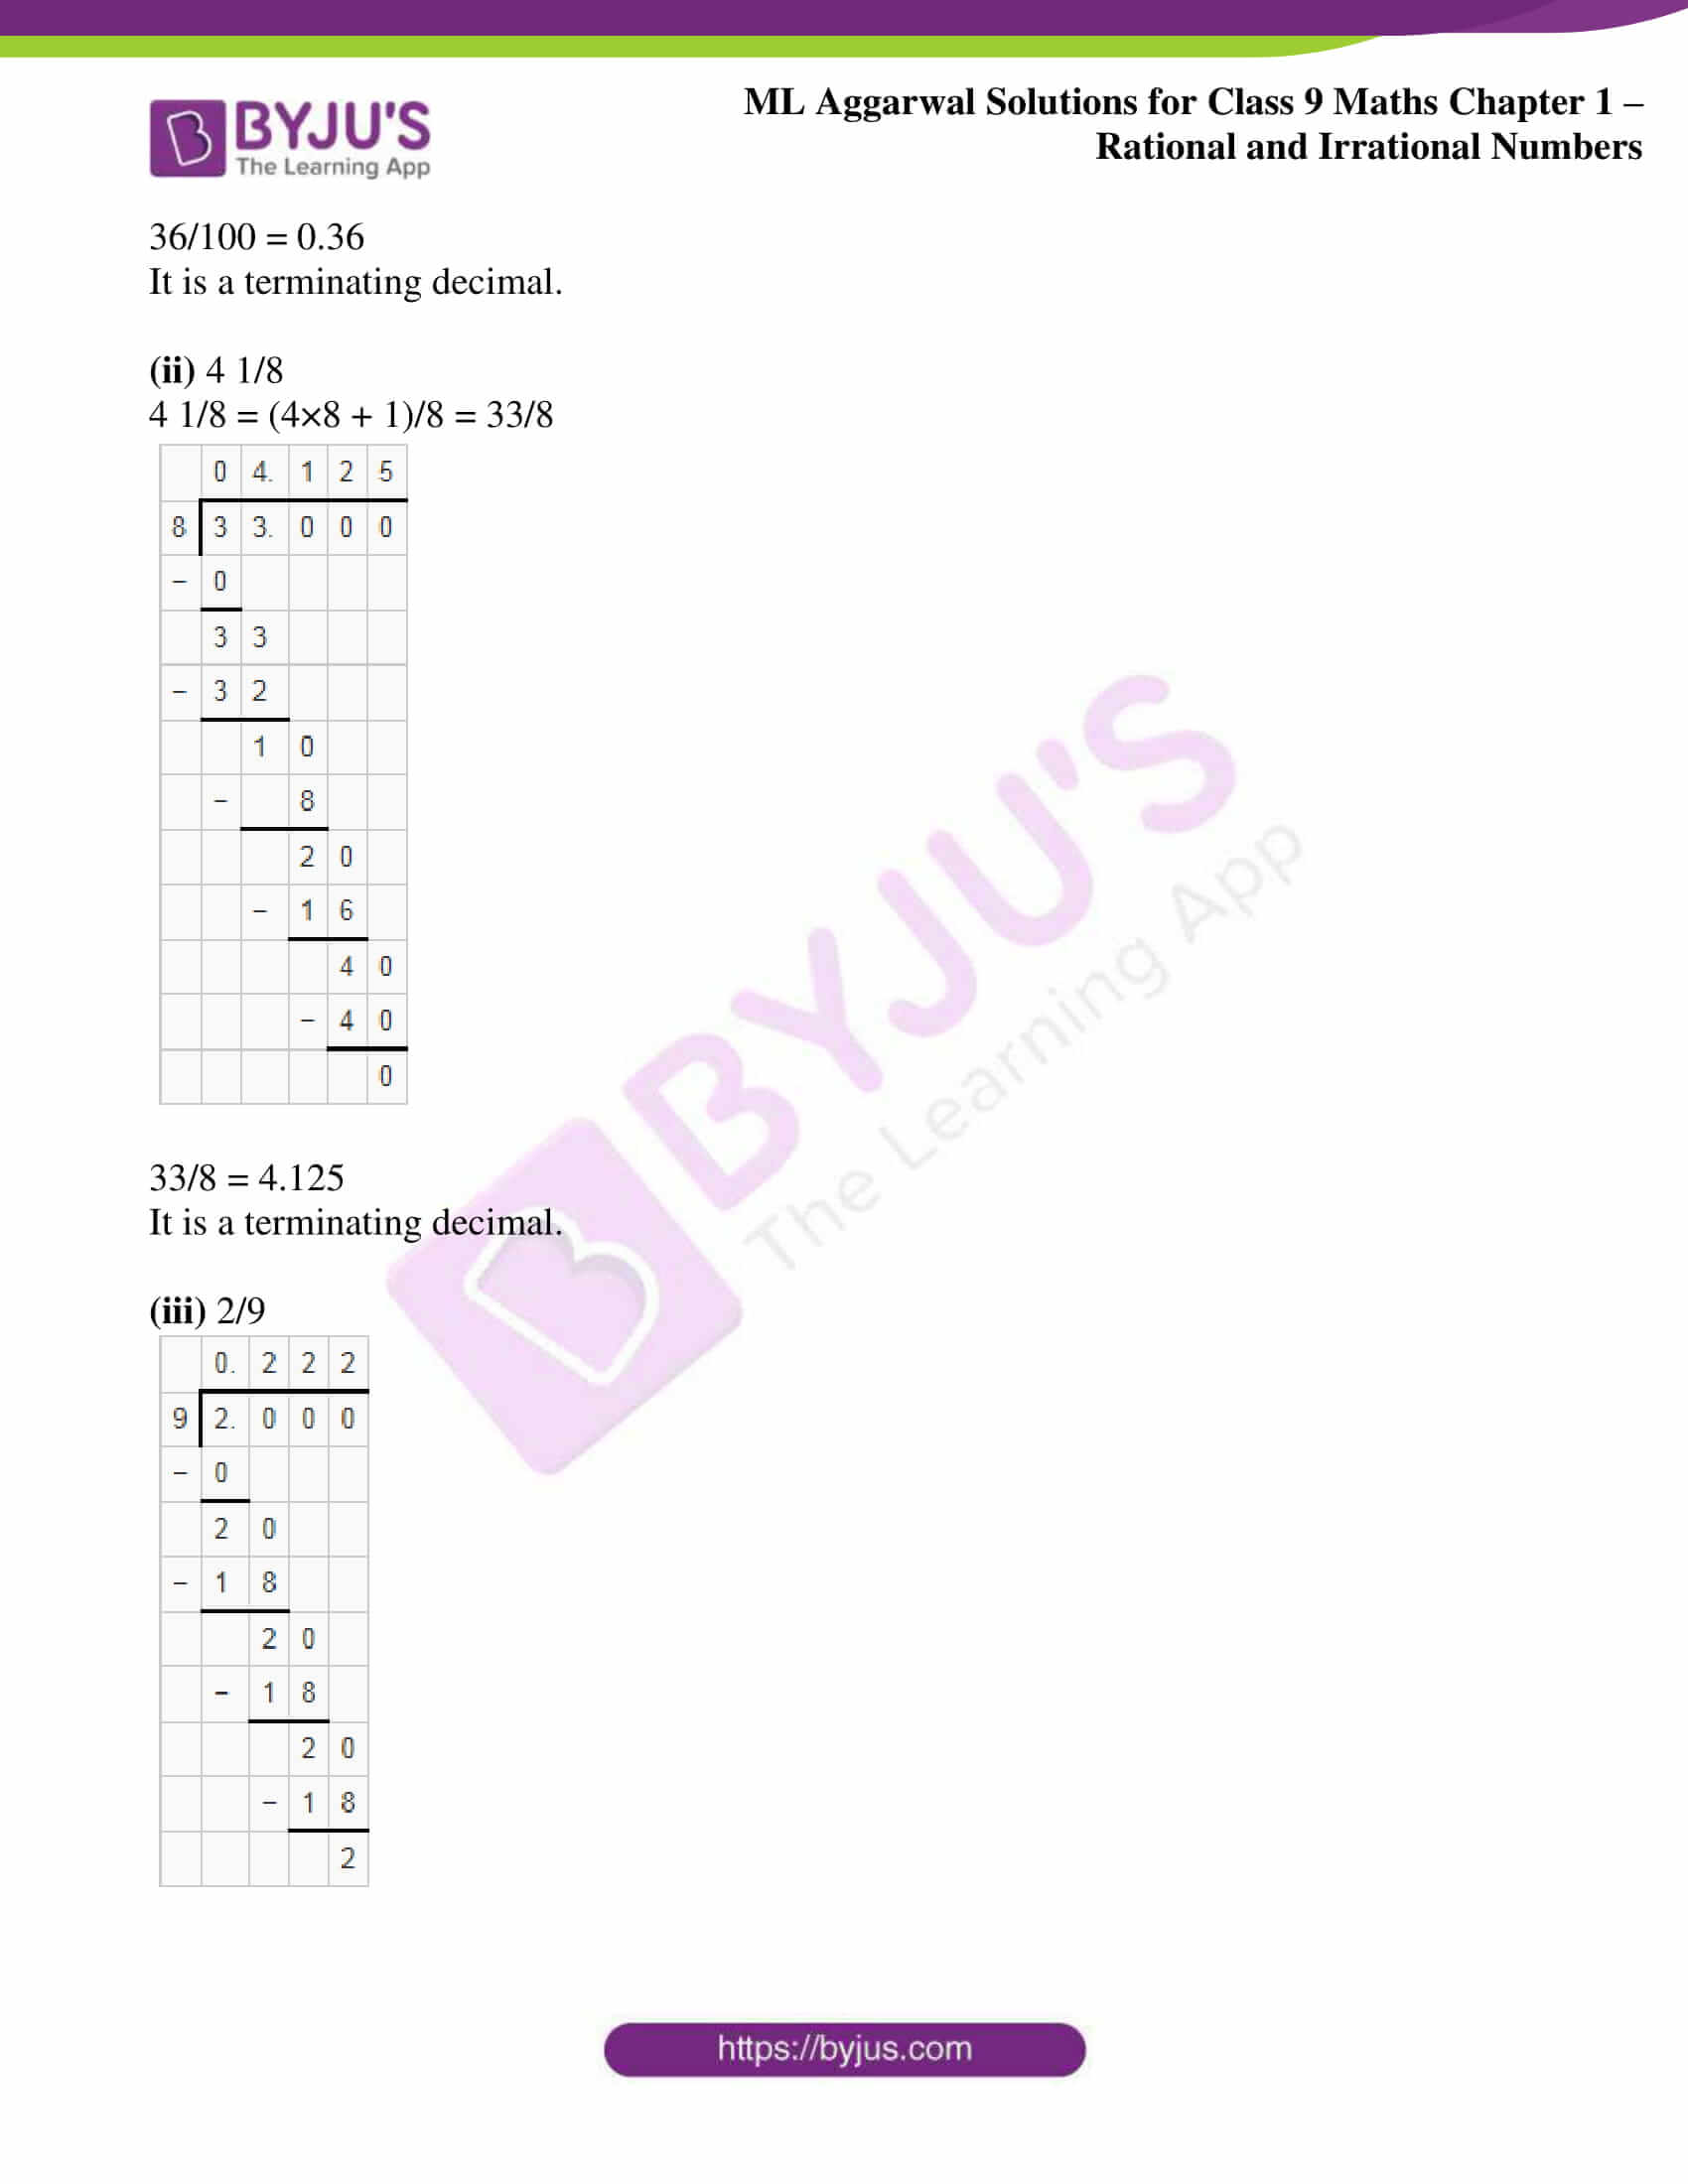 ml aggarwal solutions for class 9 maths chapter 1 17